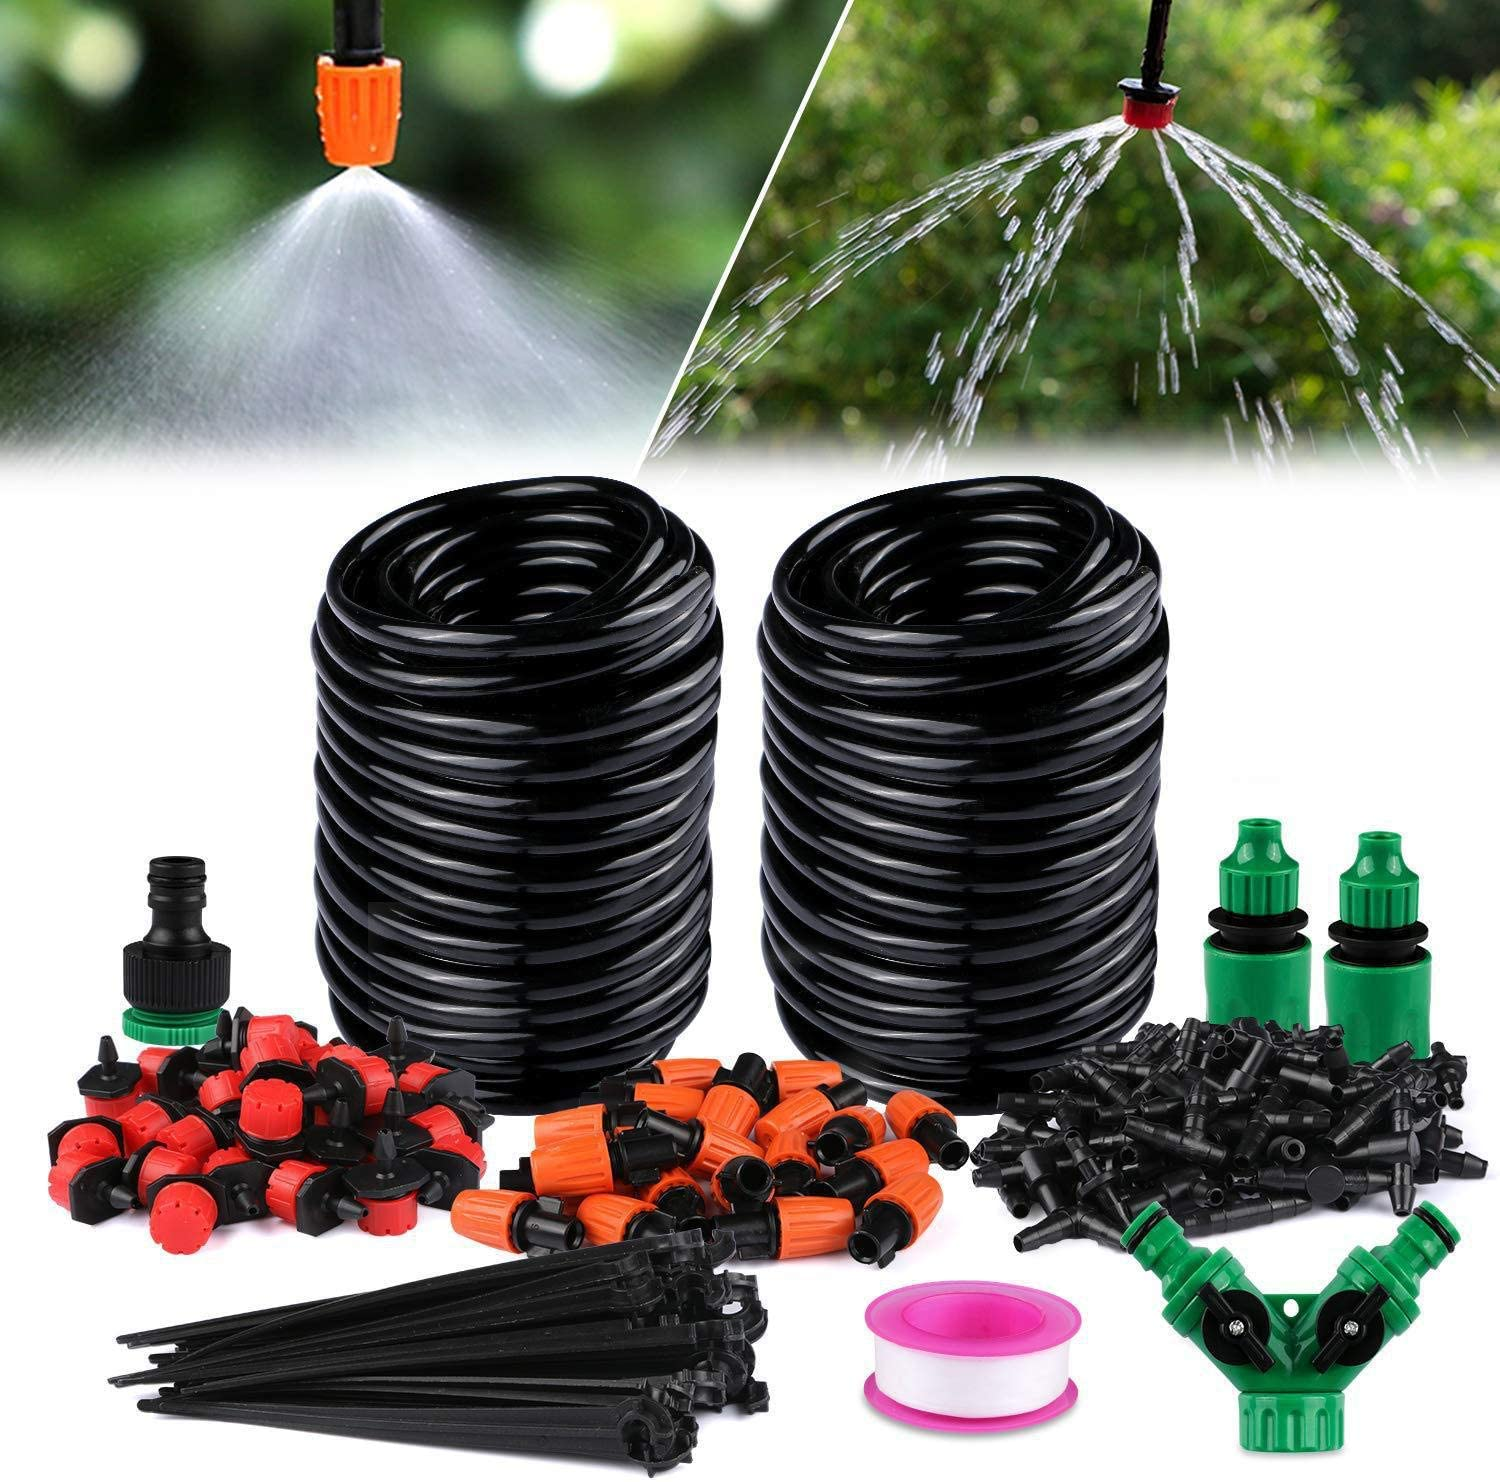 67% OFF of Lowest price challenge fixed price Misting Cooling System 98FT 30M Nozzles Outd Line 50 +